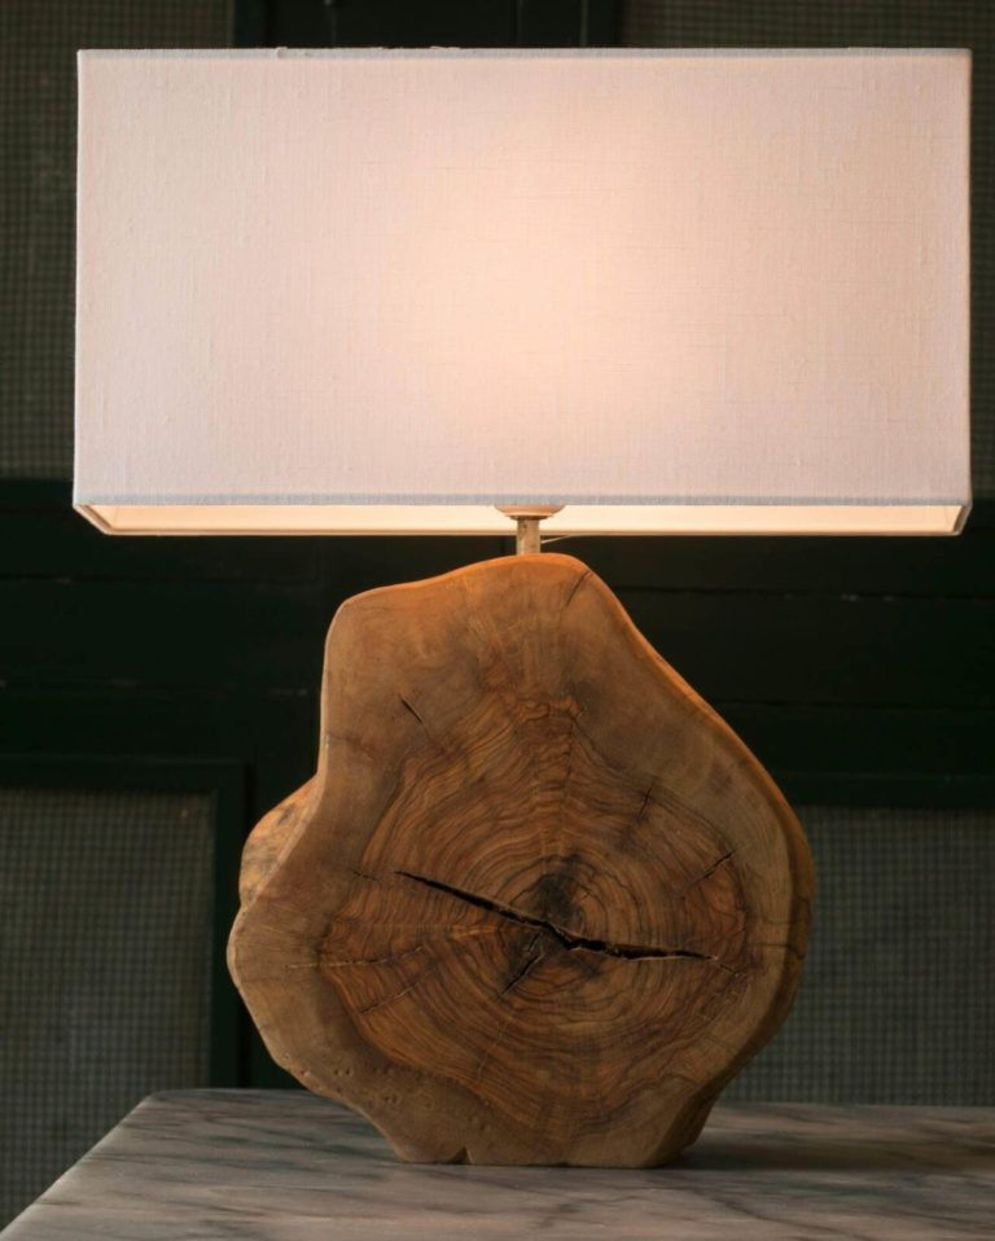 Stunning natural material for Driftwood lamp decoration creating an incredible ambiance Image 26